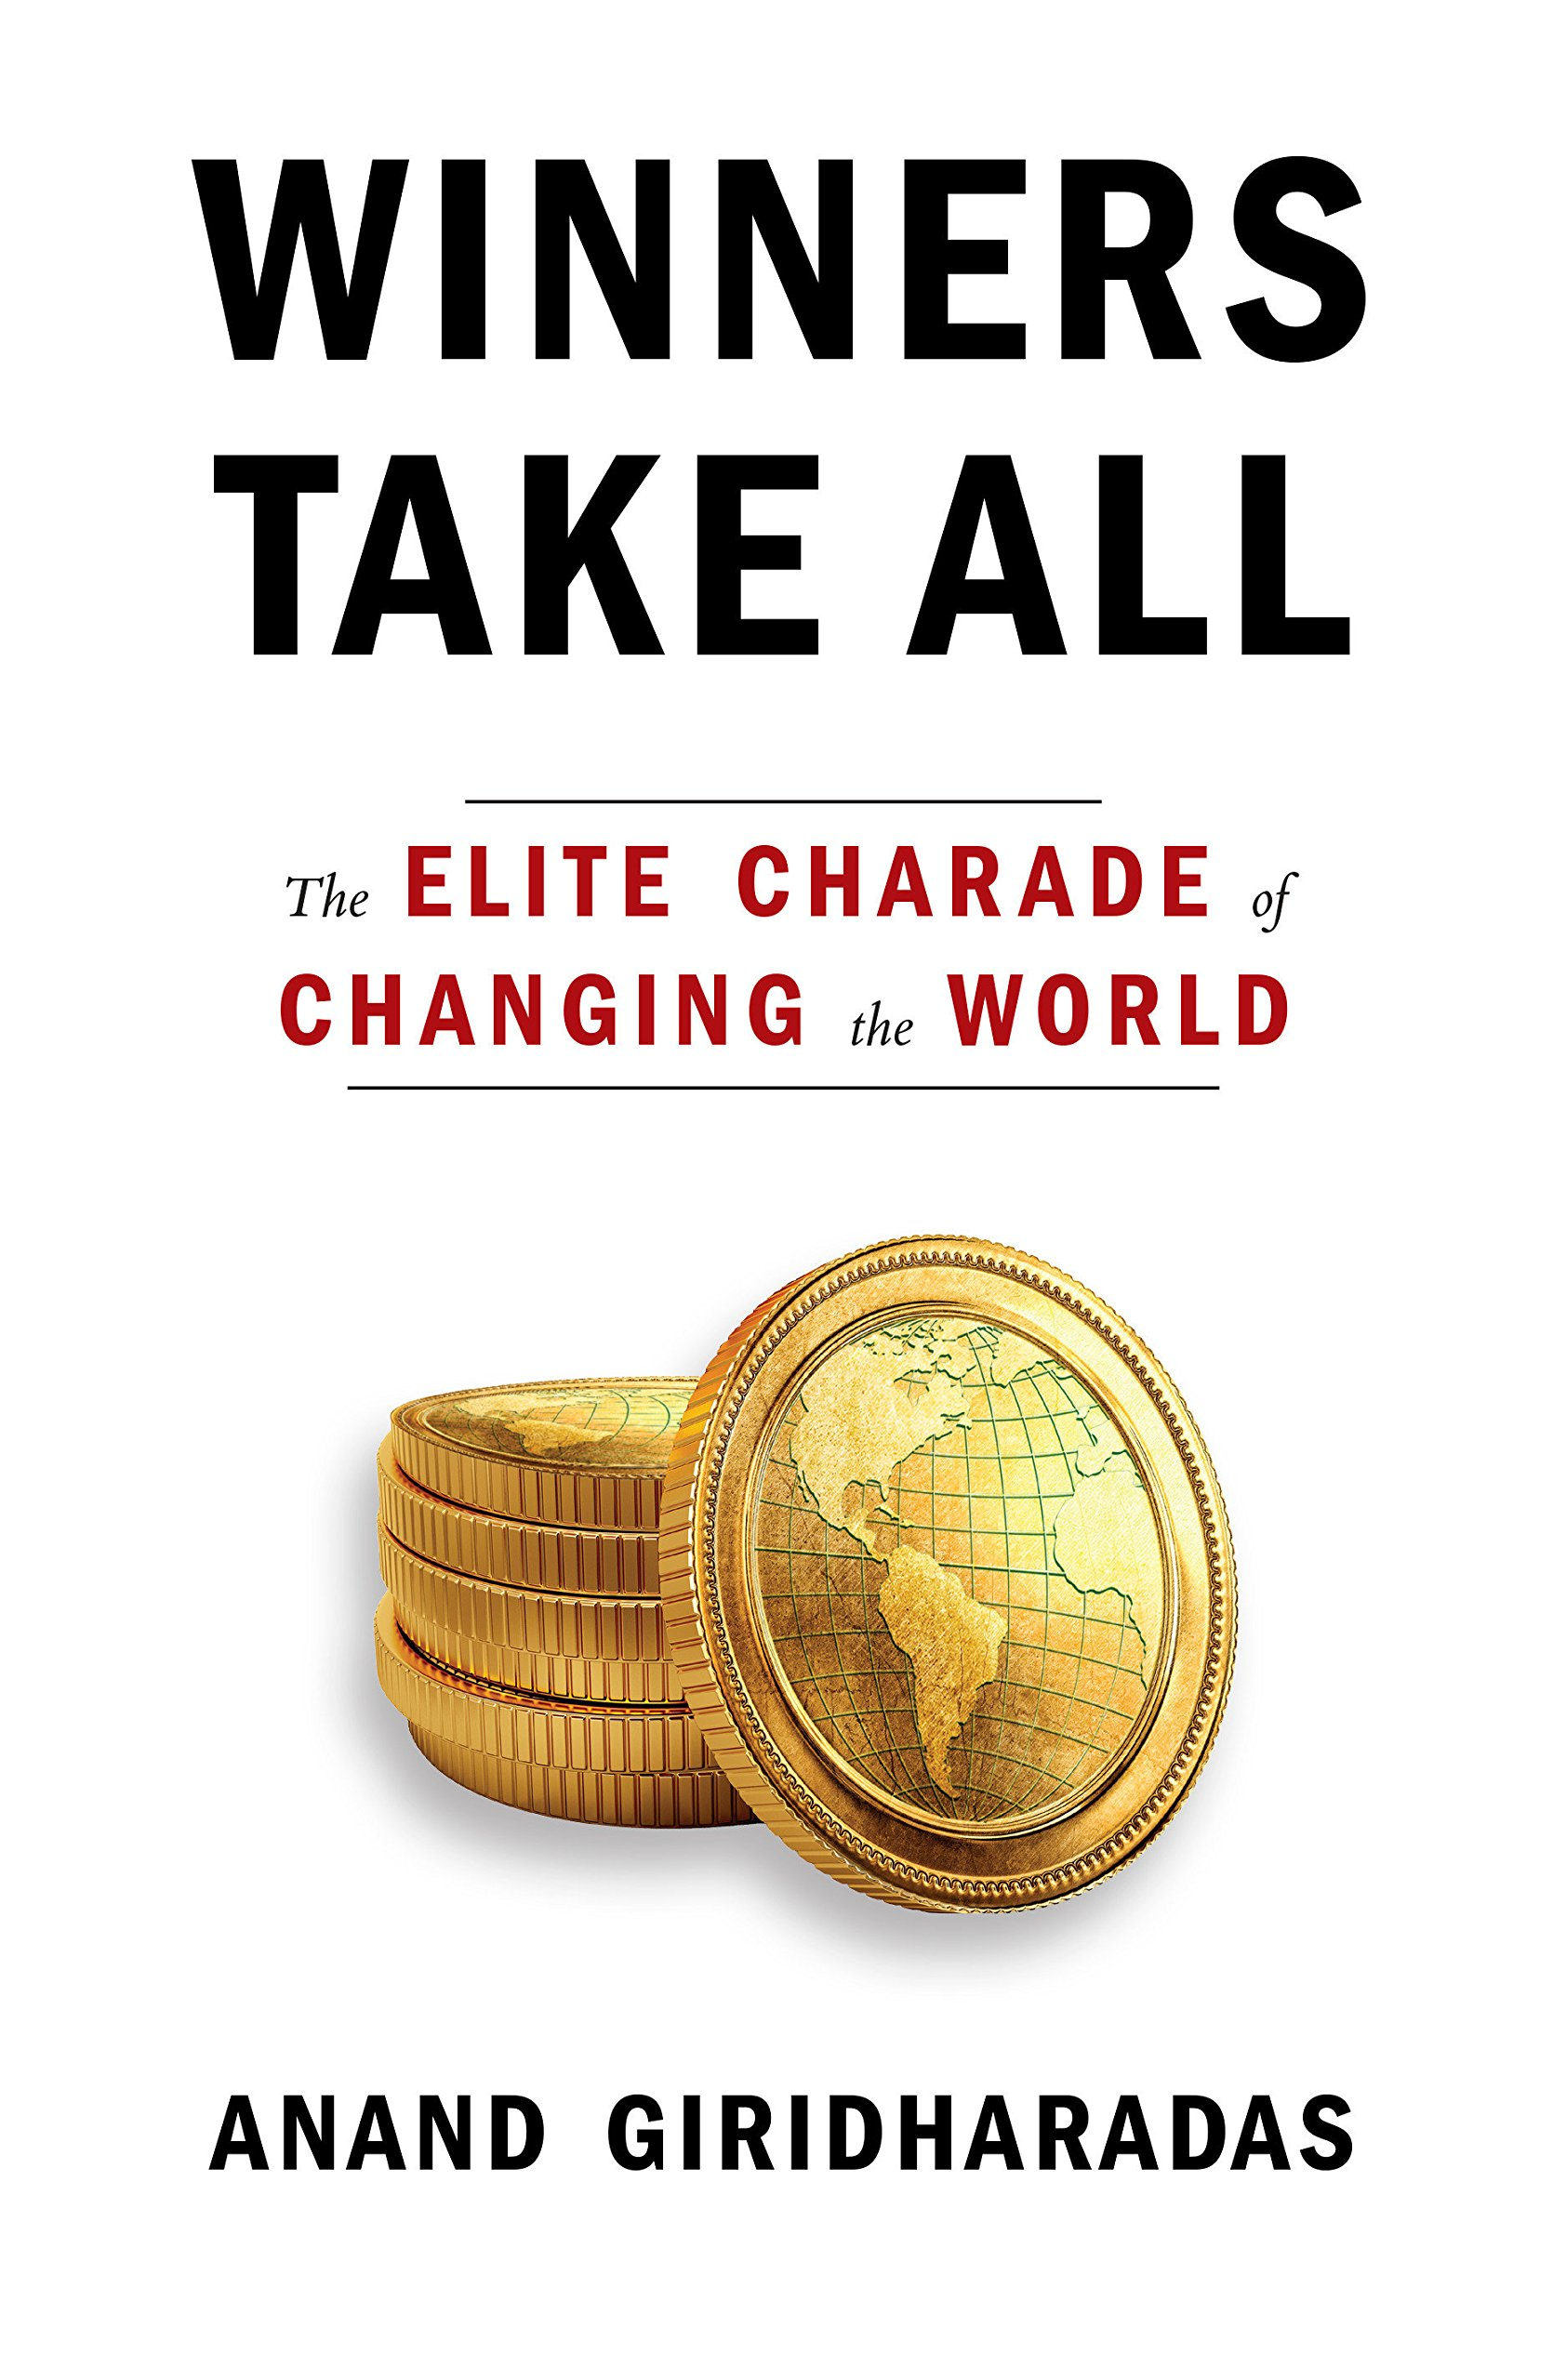 """Friday Video: Anand Giridharadas """"Winners Take All: The Elite Charade of Changing the World"""" 